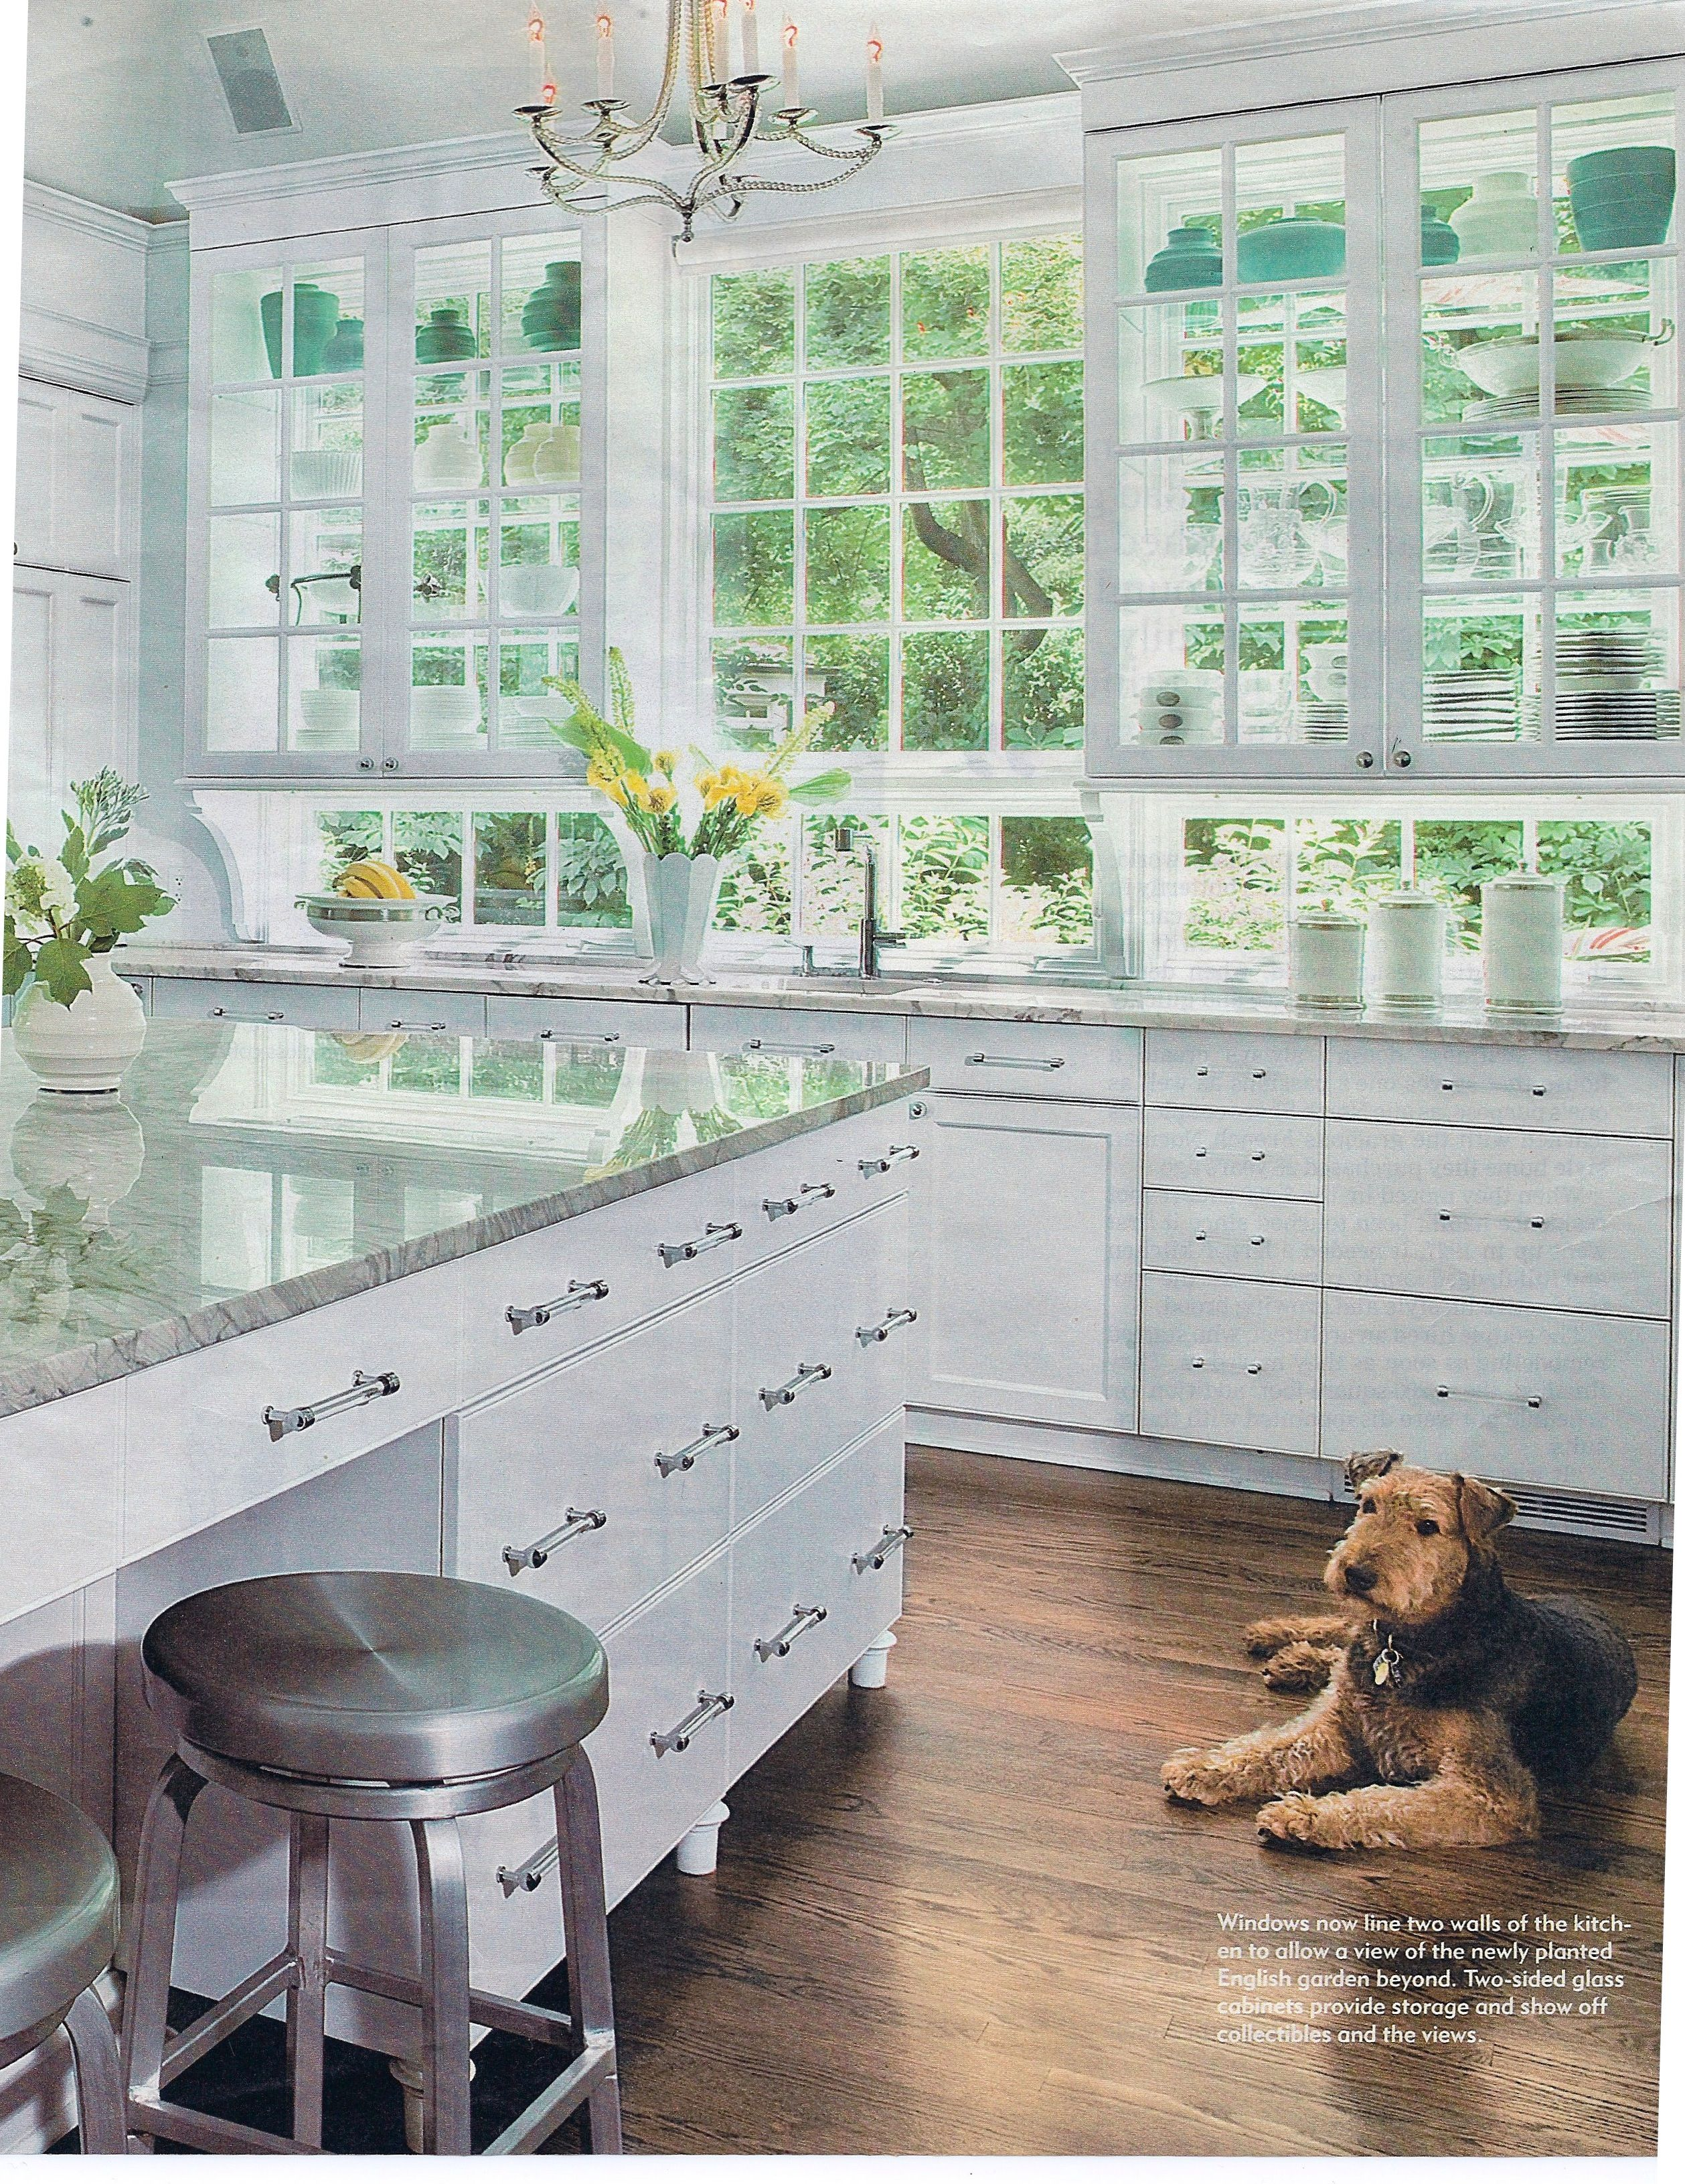 Kitchen Design Ideas Clean And Scentsible Kitchen Display Cabinet Kitchen Inspirations Home